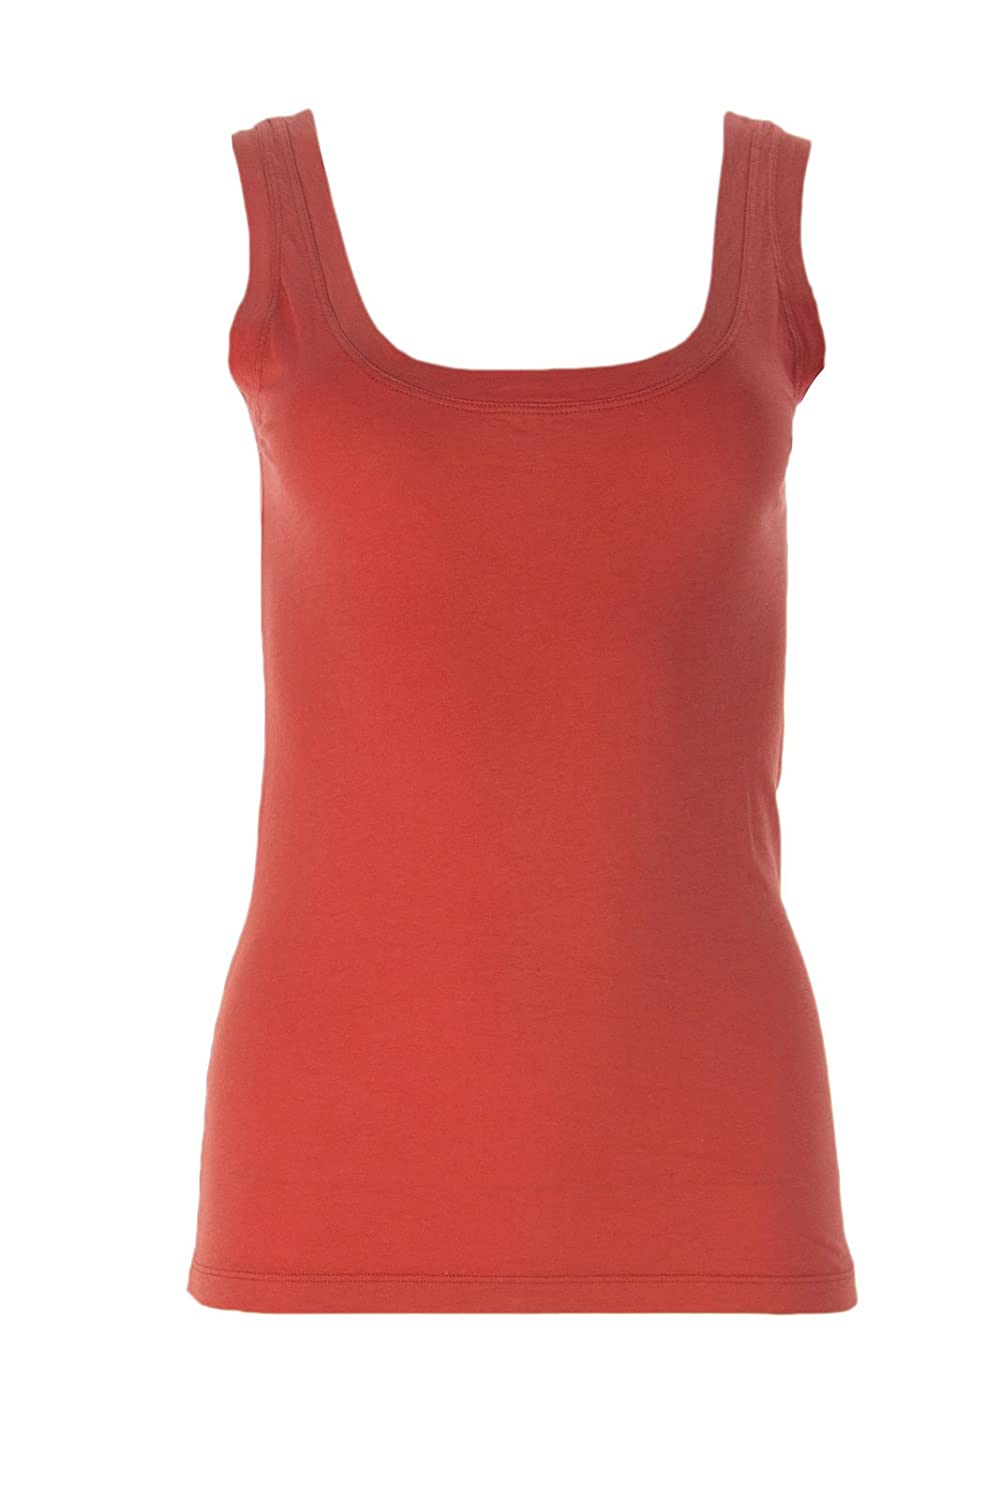 VELVET by Graham & Spencer Women's Solid U-Neck Tank Top